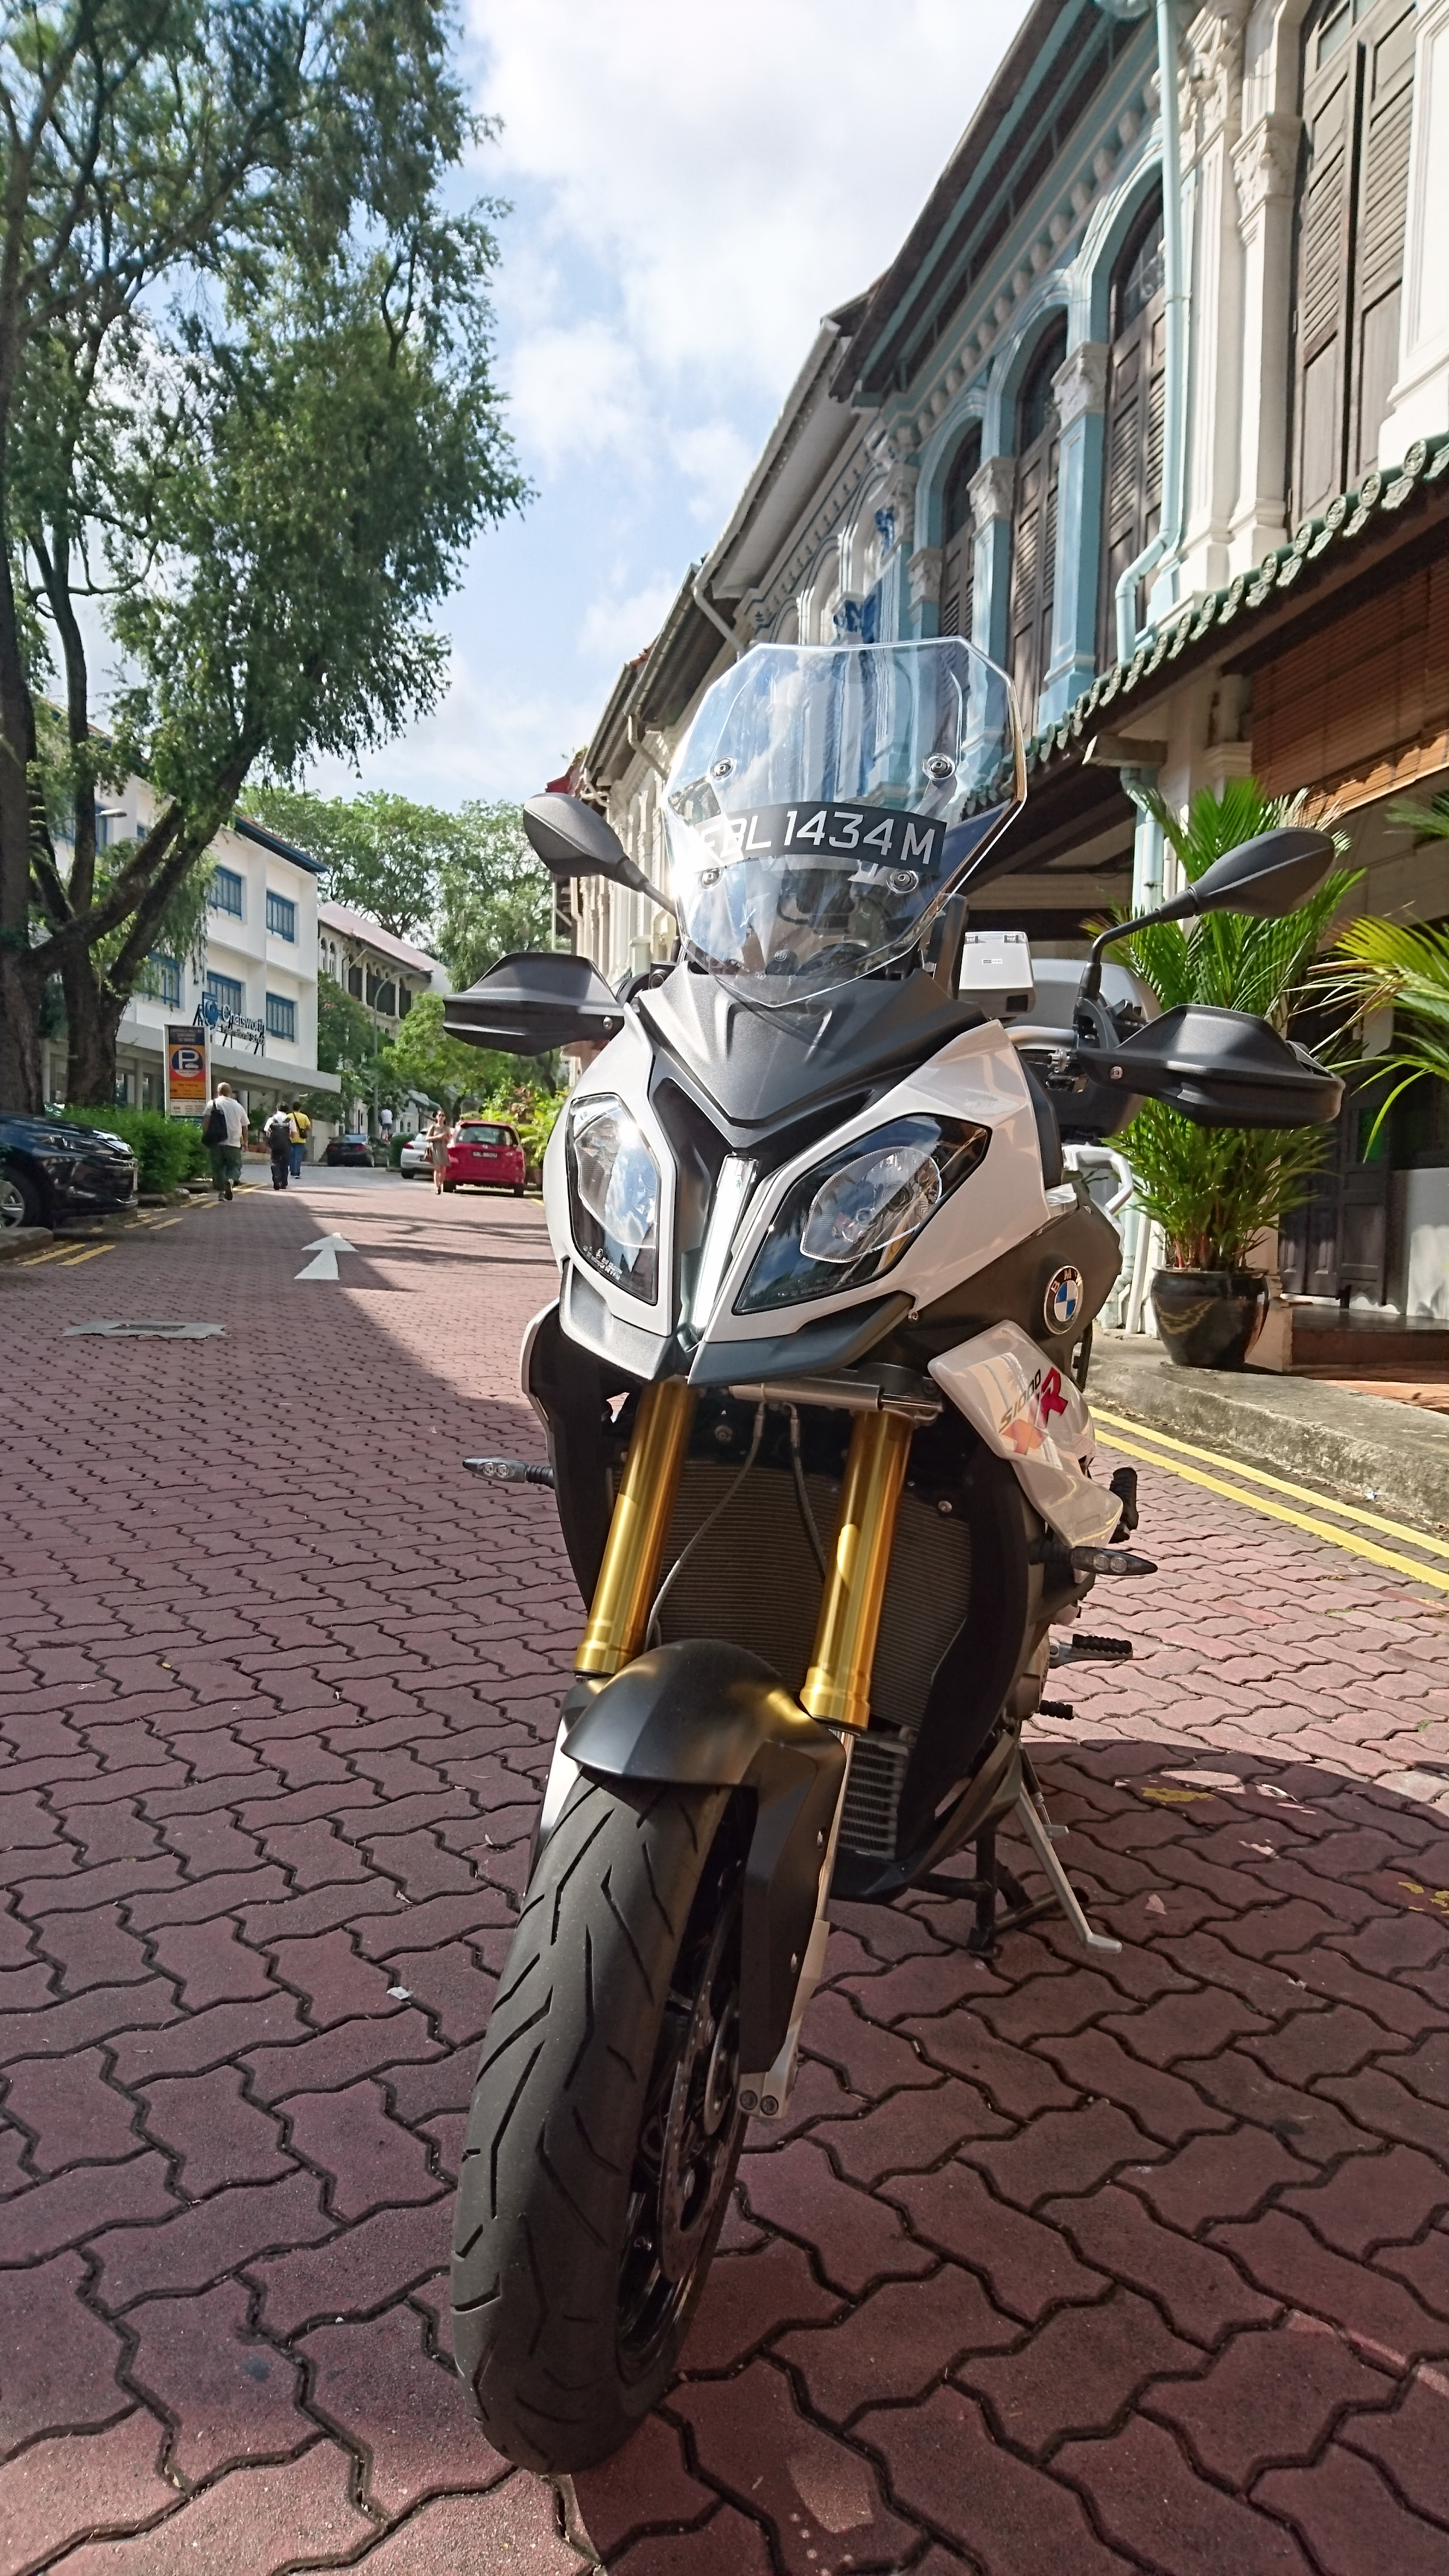 Front view of the BMW S1000XR with upside-down Sachs suspension